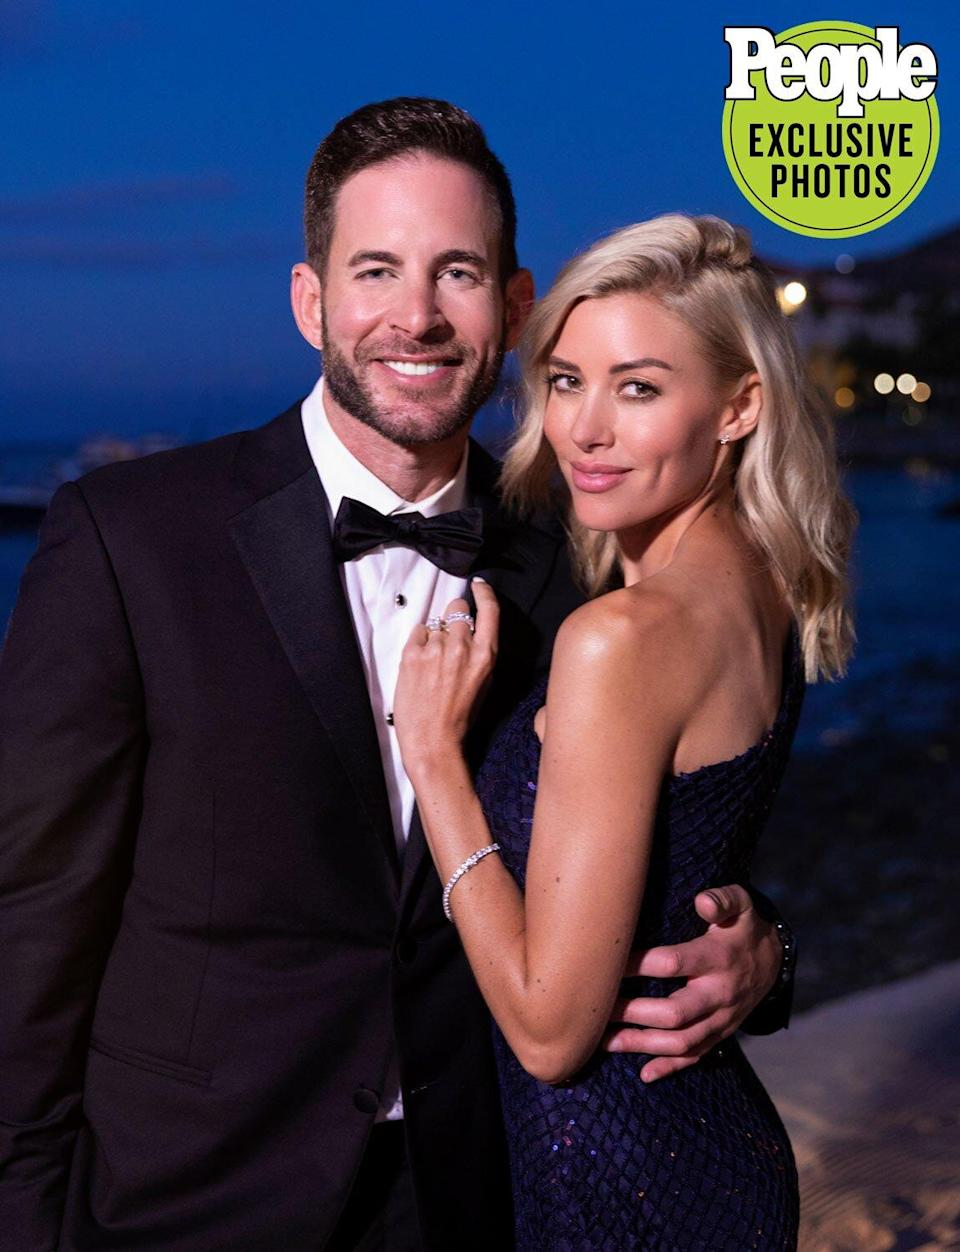 Tarek El Moussa and Heather Rae Young Engagement